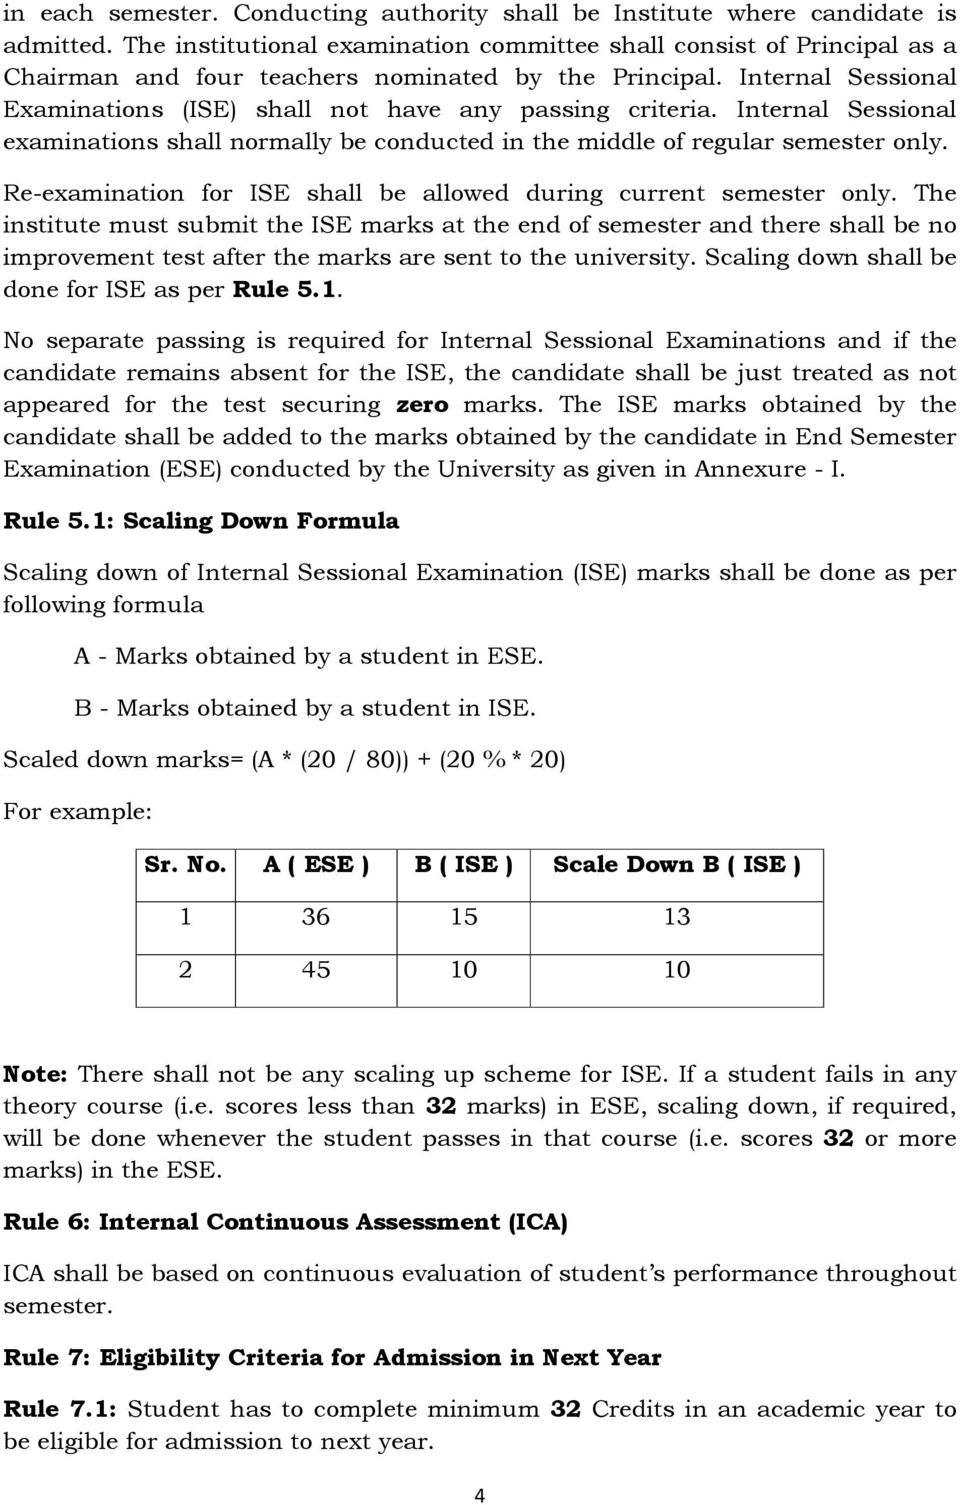 Internal Sessional Examinations (ISE) shall not have any passing criteria. Internal Sessional examinations shall normally be conducted in the middle of regular semester only.